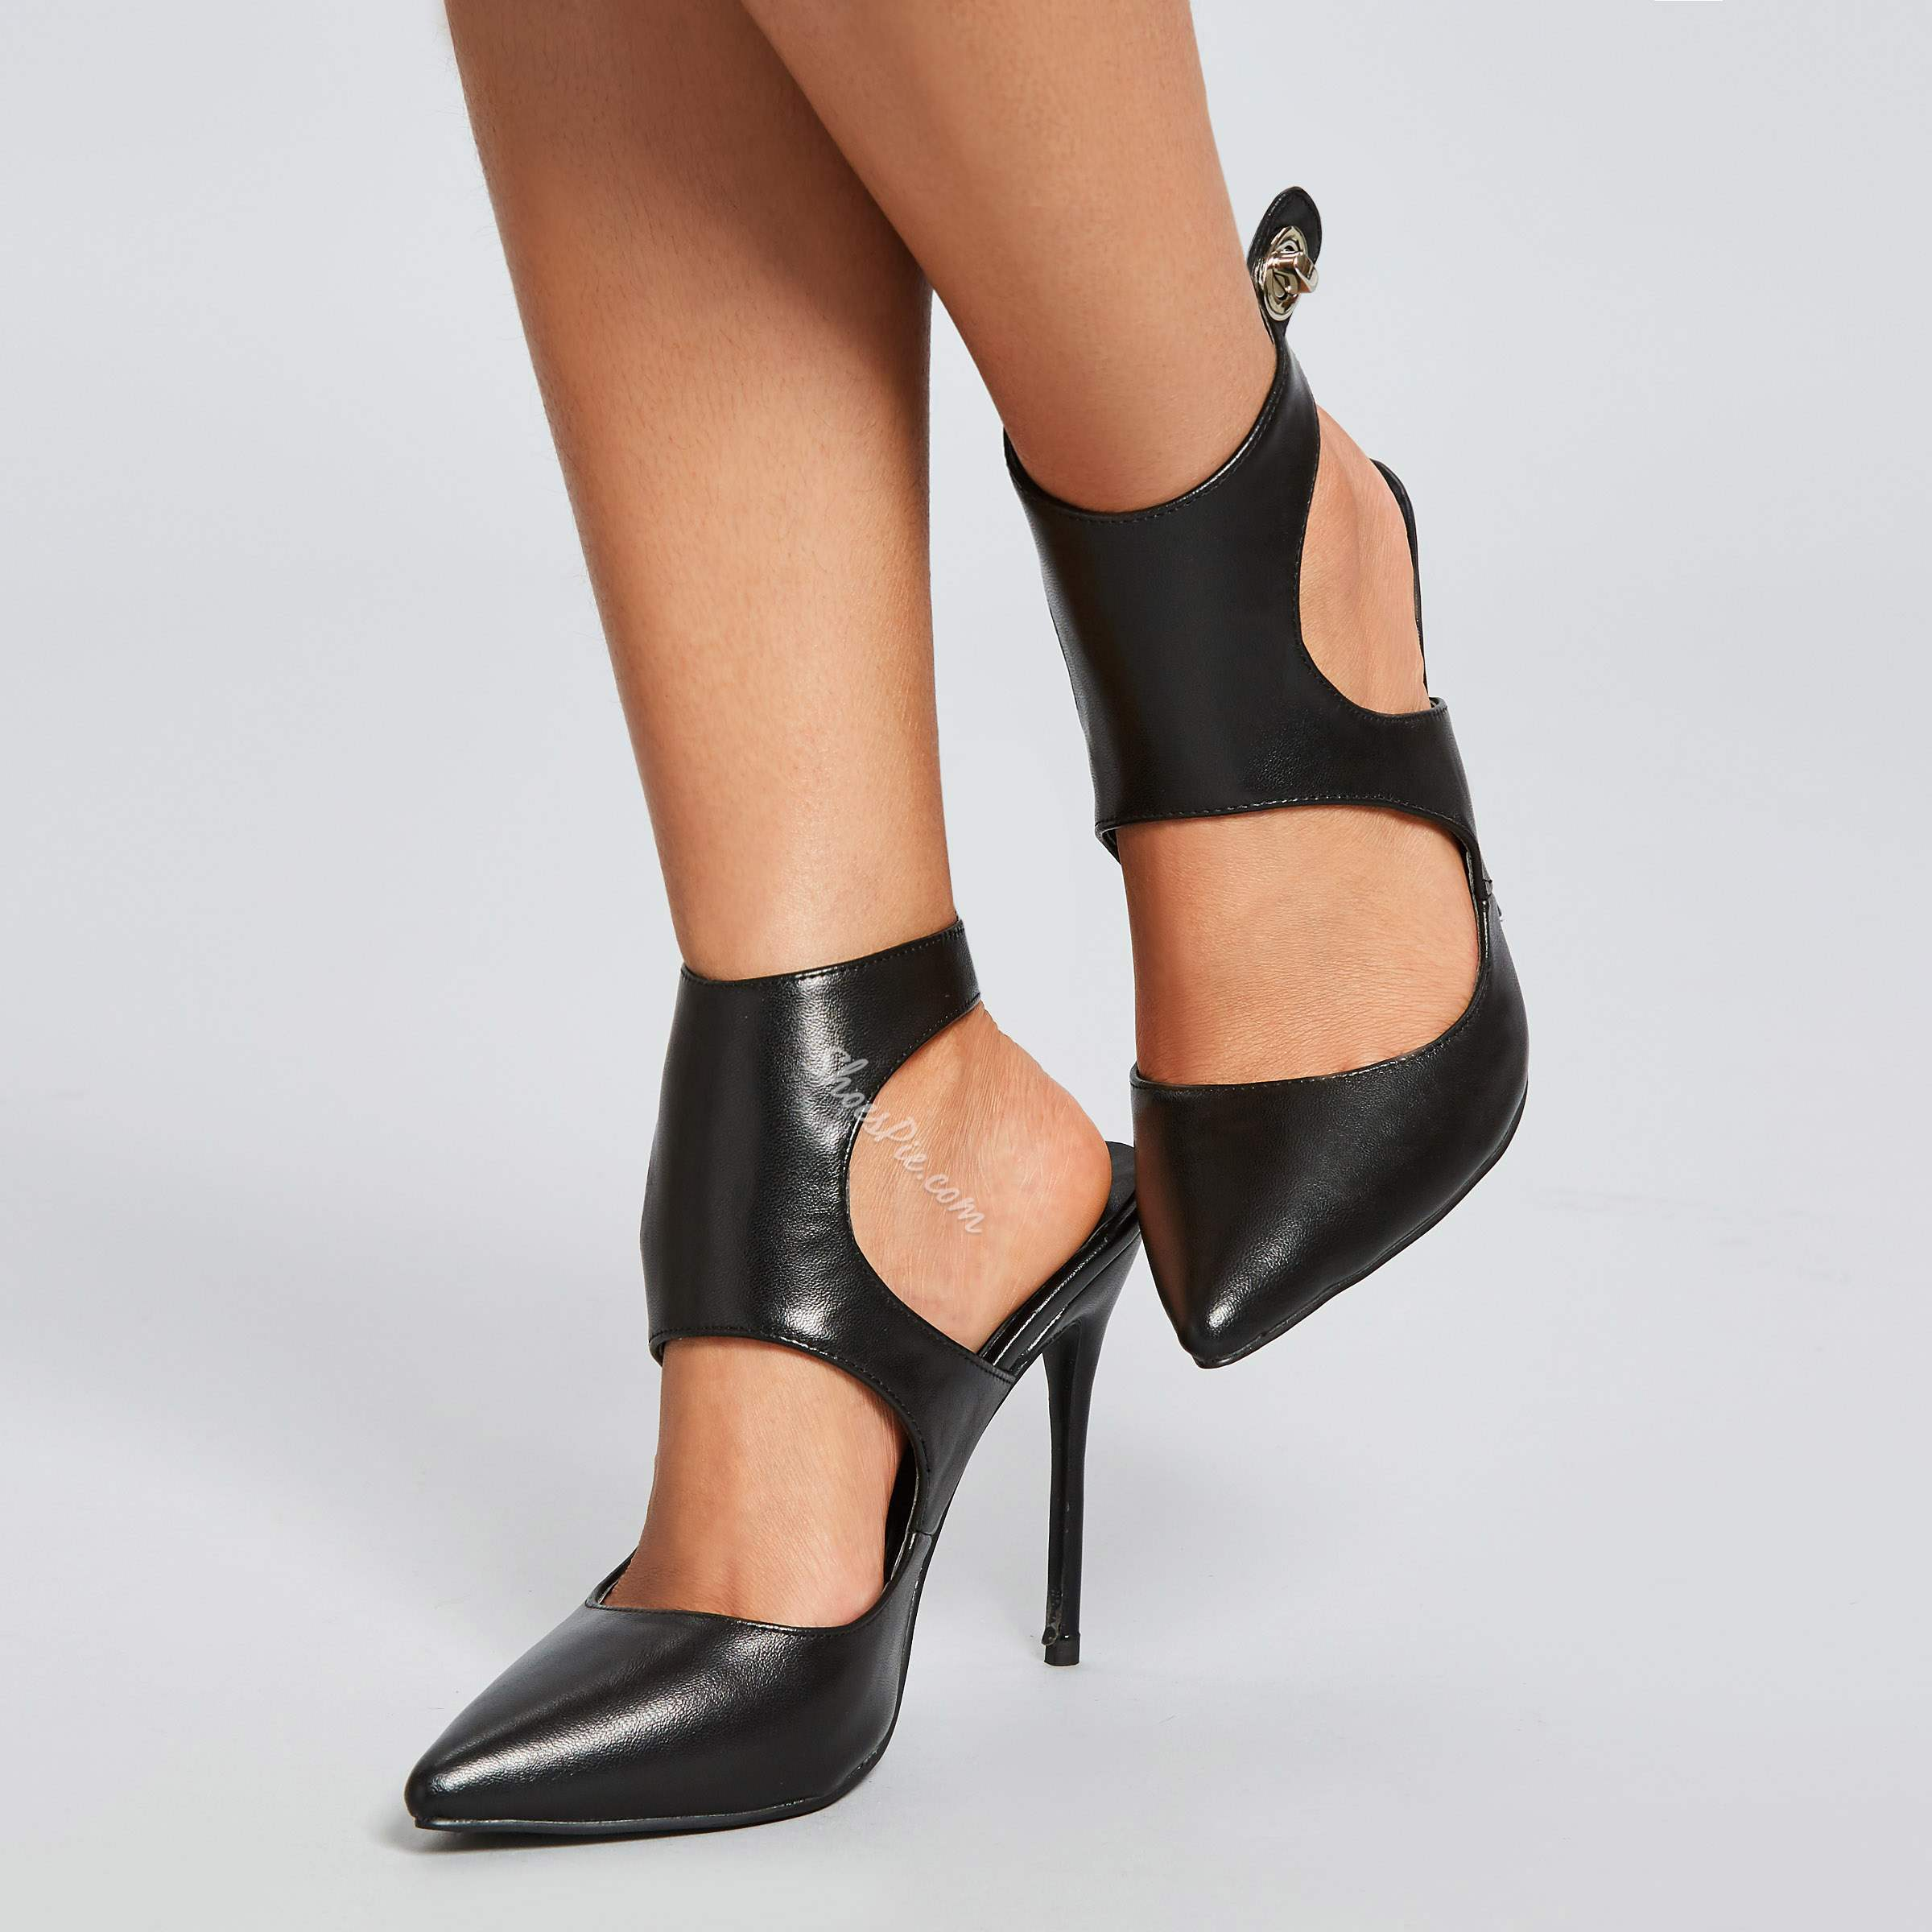 Shoespie Sexy Ankle Wrap Black Stiletto Heels